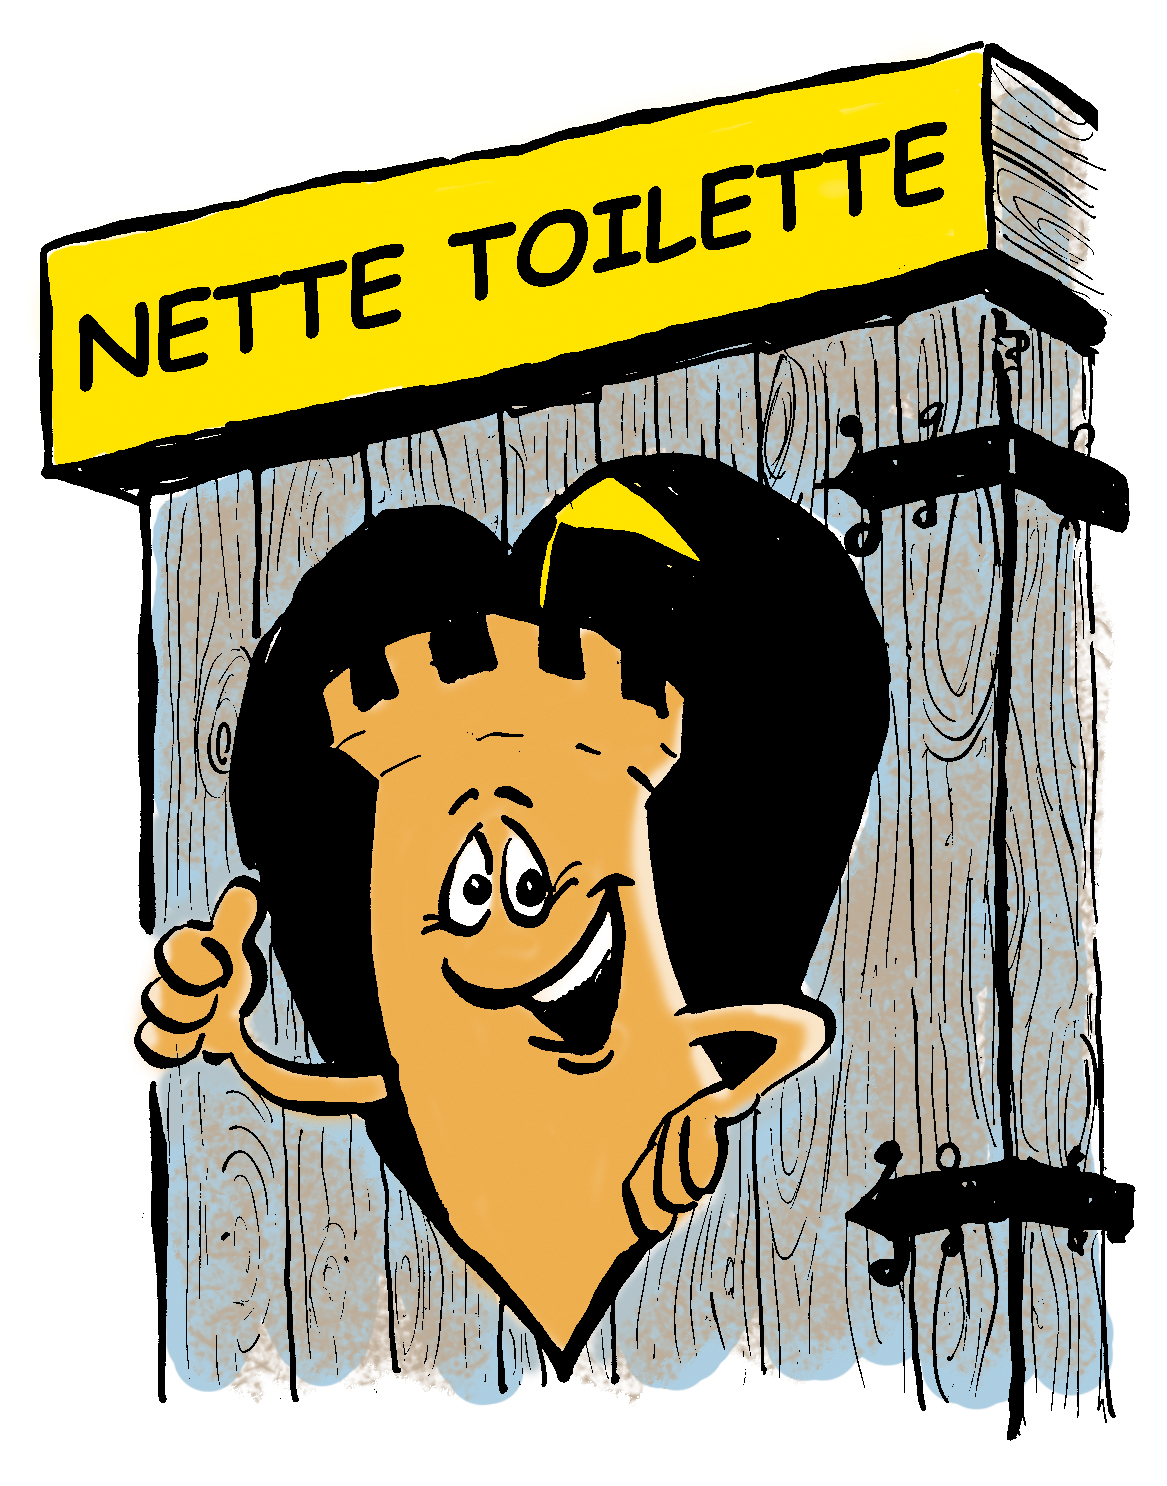 billy bilstein nette toilette